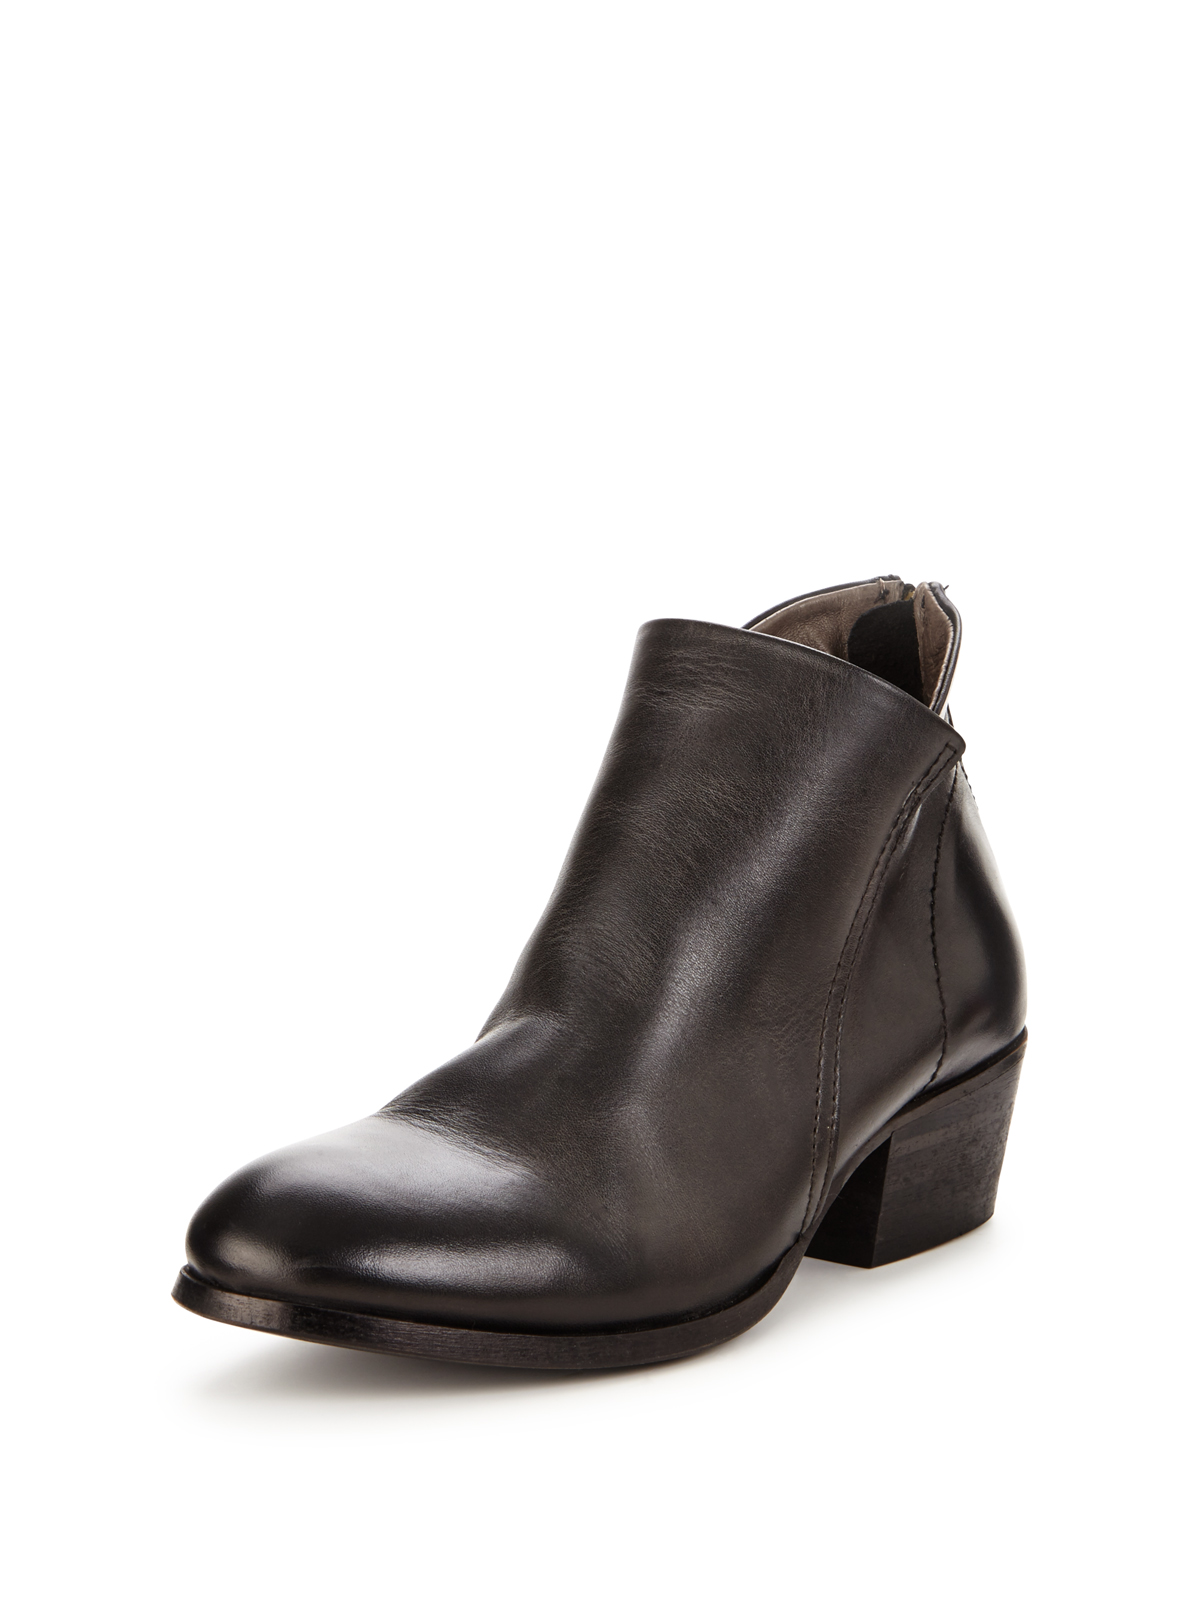 littlewoods clearance catalogue s footwear from